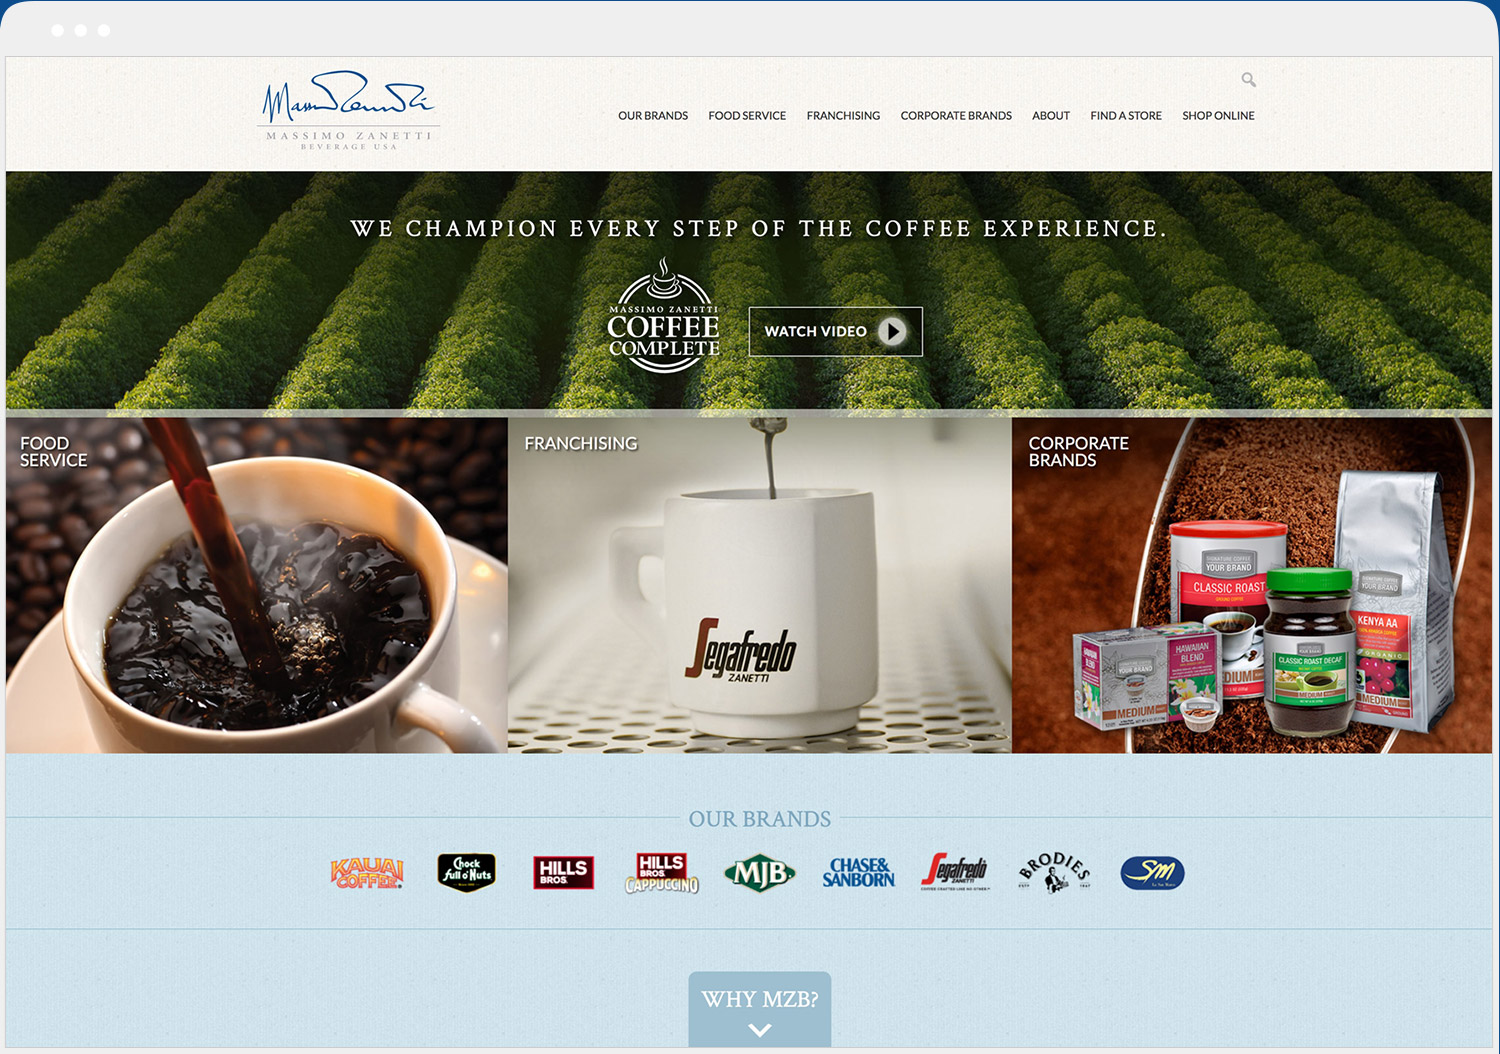 Massimo Zanetti Beverage website desktop view